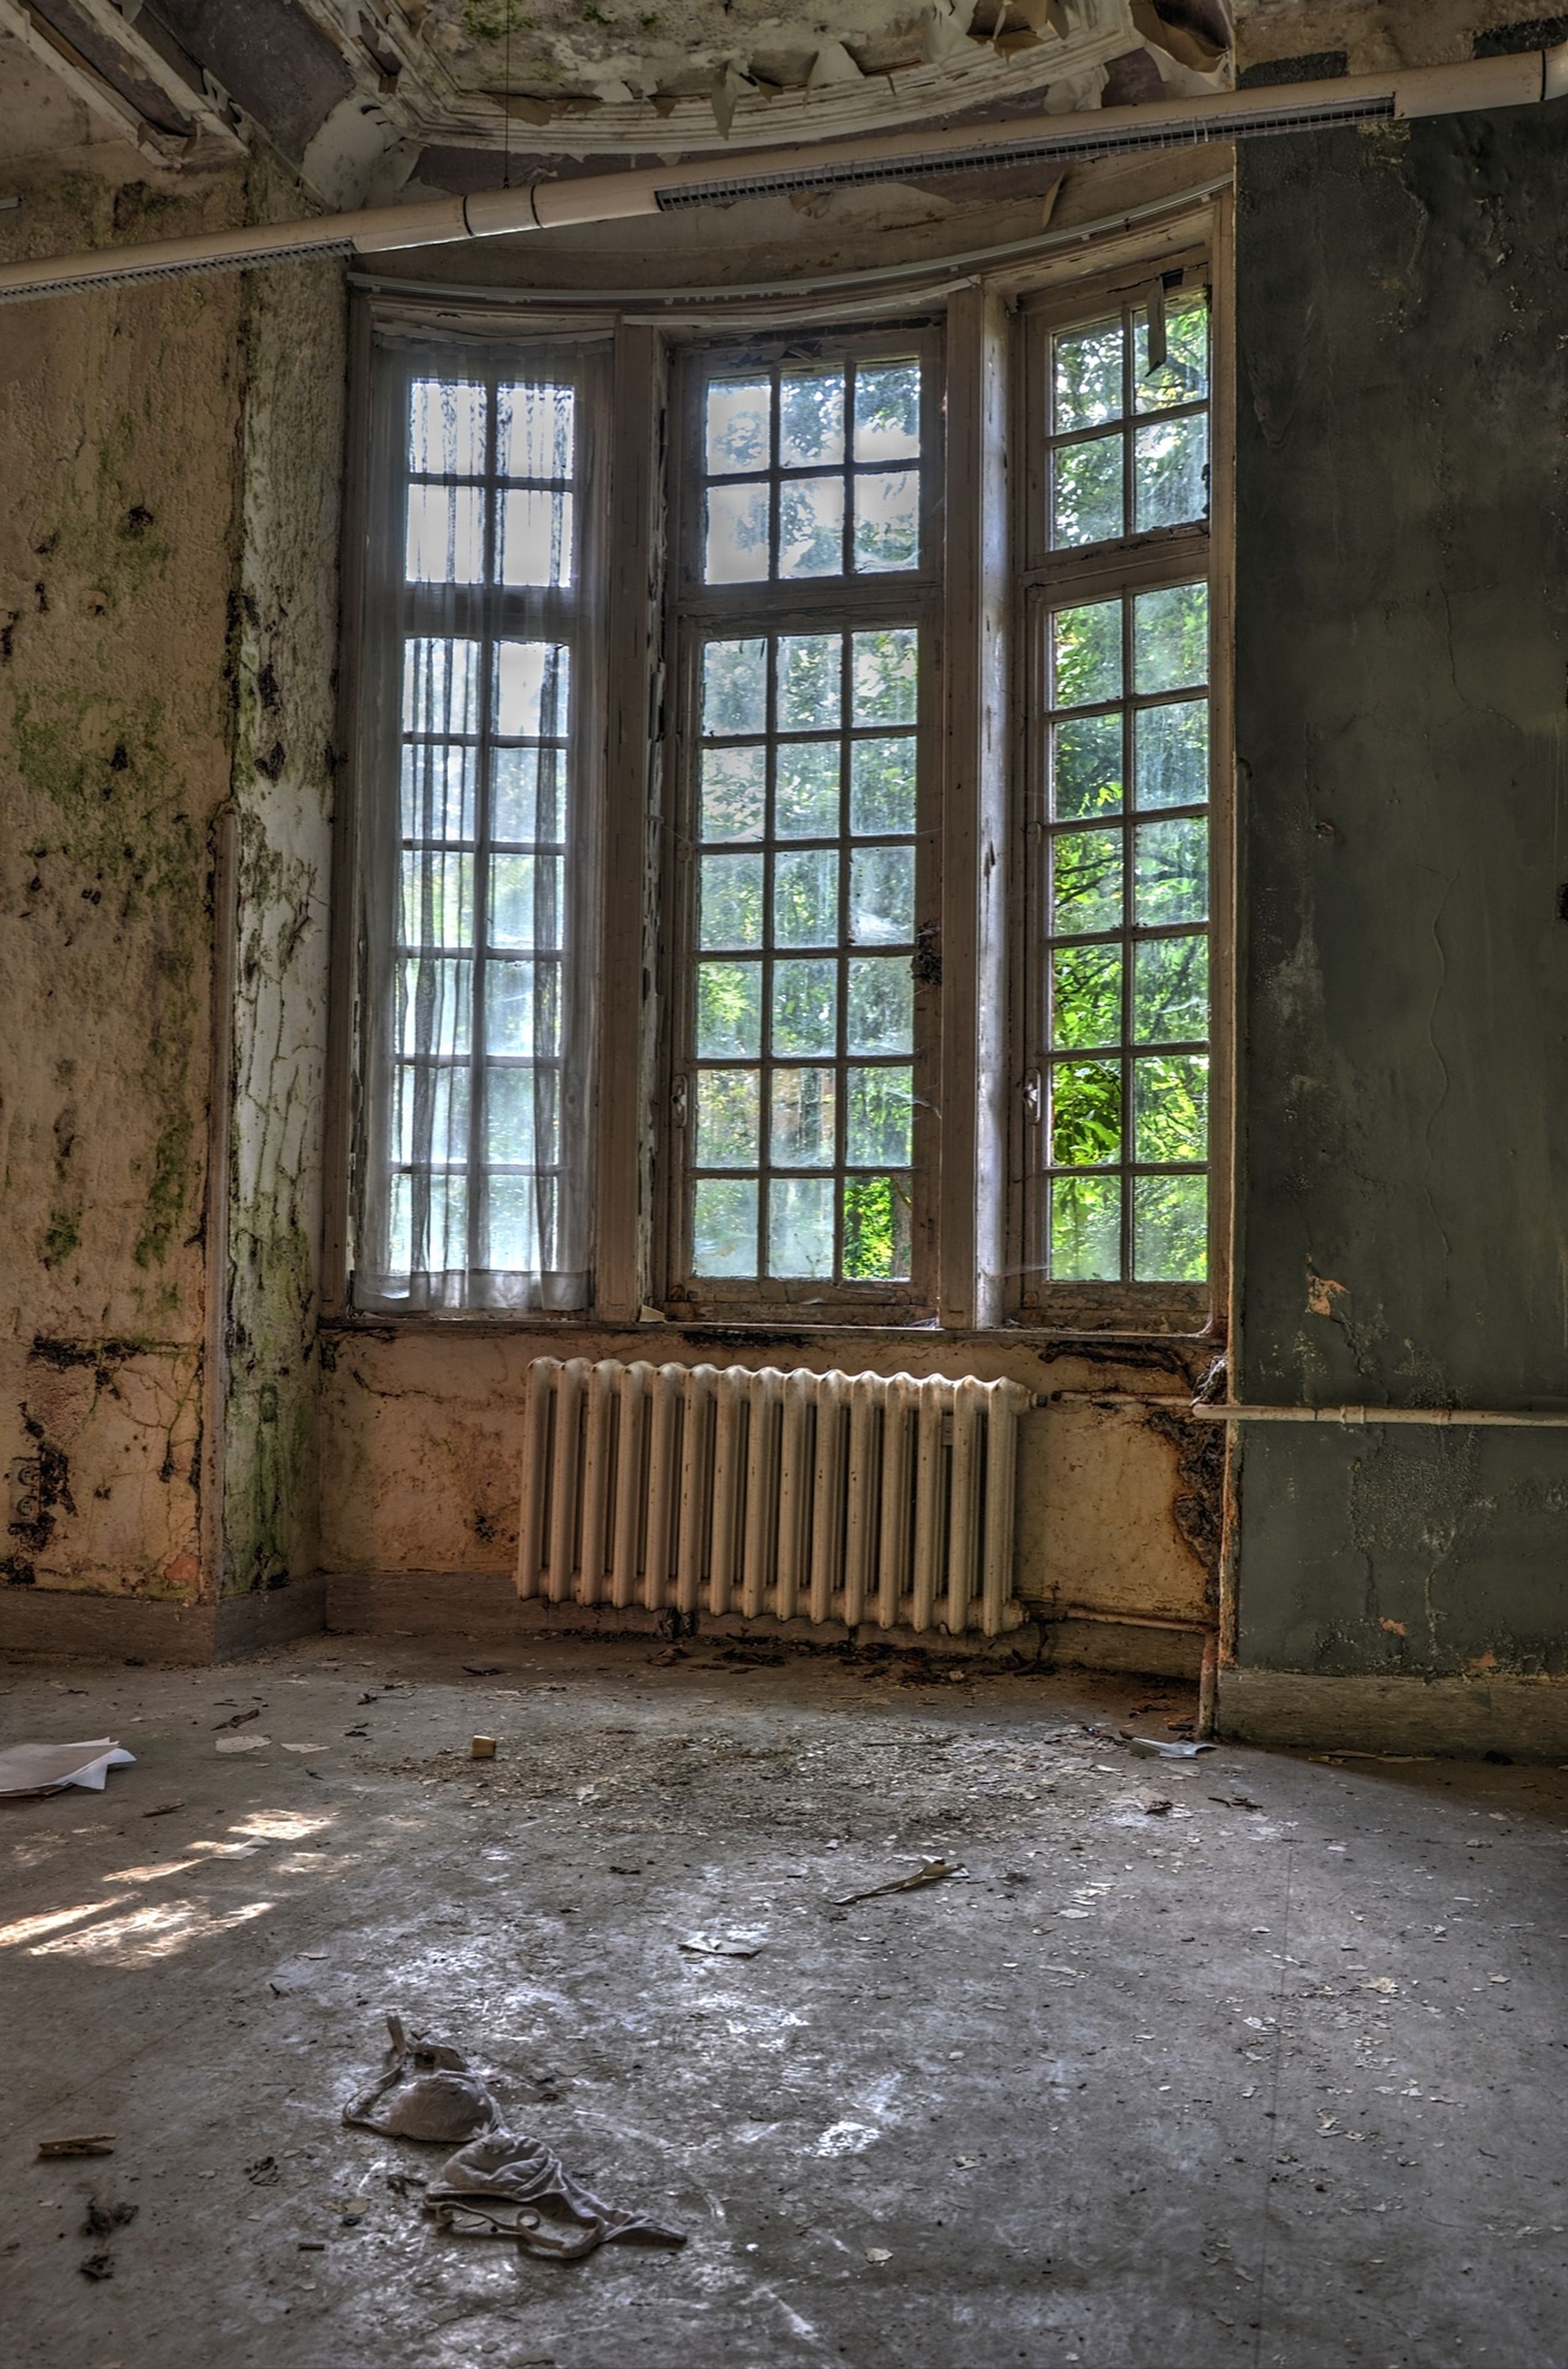 abandoned, indoors, obsolete, window, architecture, damaged, built structure, deterioration, run-down, old, house, bad condition, door, interior, weathered, broken, messy, closed, ruined, absence